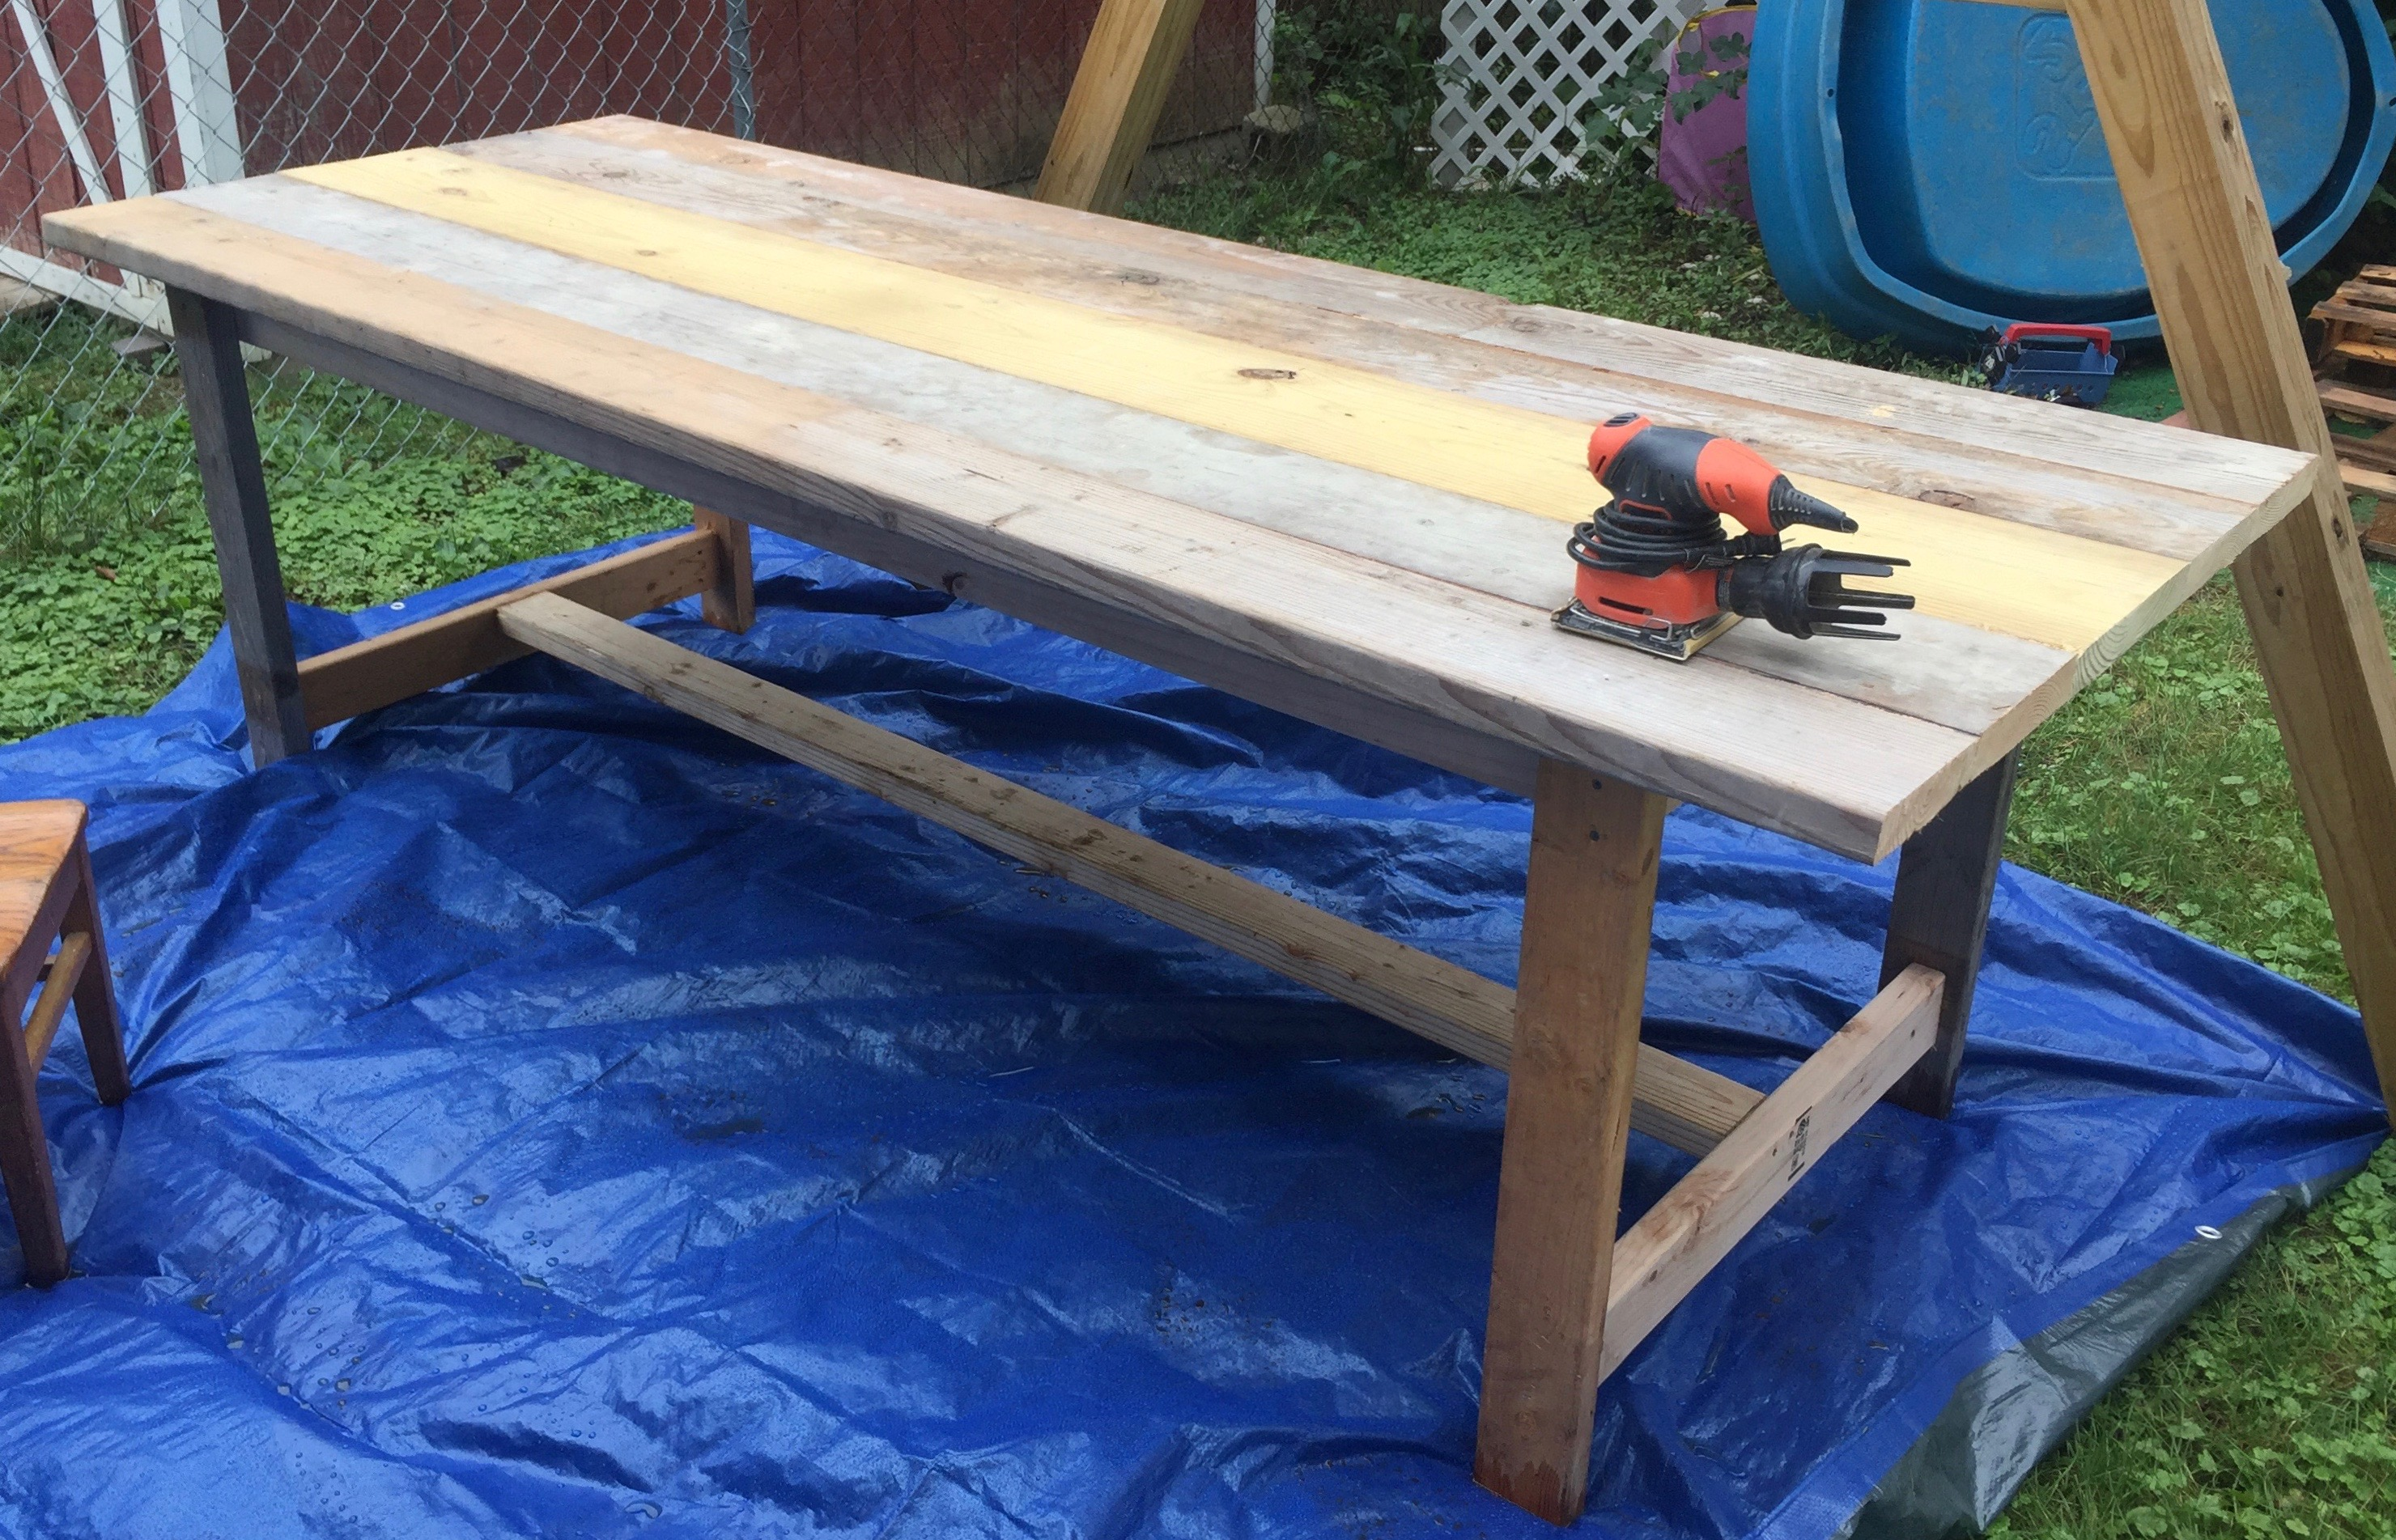 In progress of finishing up sanding my DIY Farmhouse table from reclaimed wood. Simple modern farmhouse style, rustic and beautiful all finished!